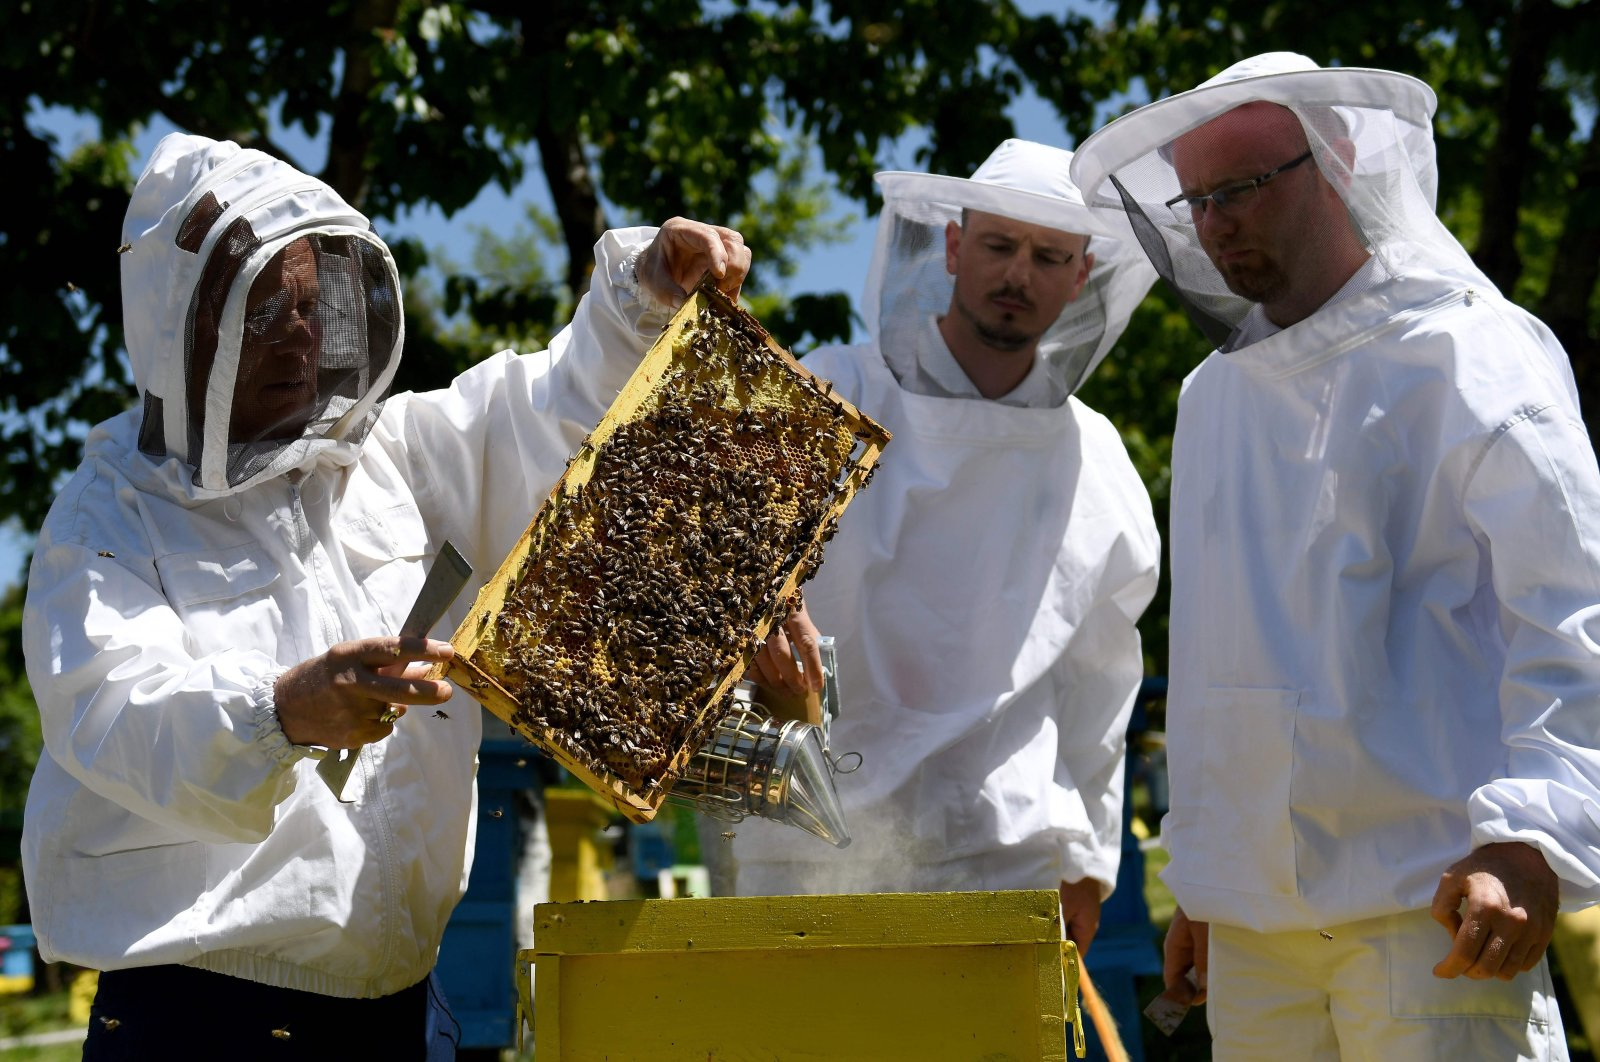 Beekeeper Gezim Skermo (L), handles a beehive's frame covered in bees at the Morava farm, in the village of Plasa, near the city of Korca, Albania on May 13, 2020. (AFP Photo)